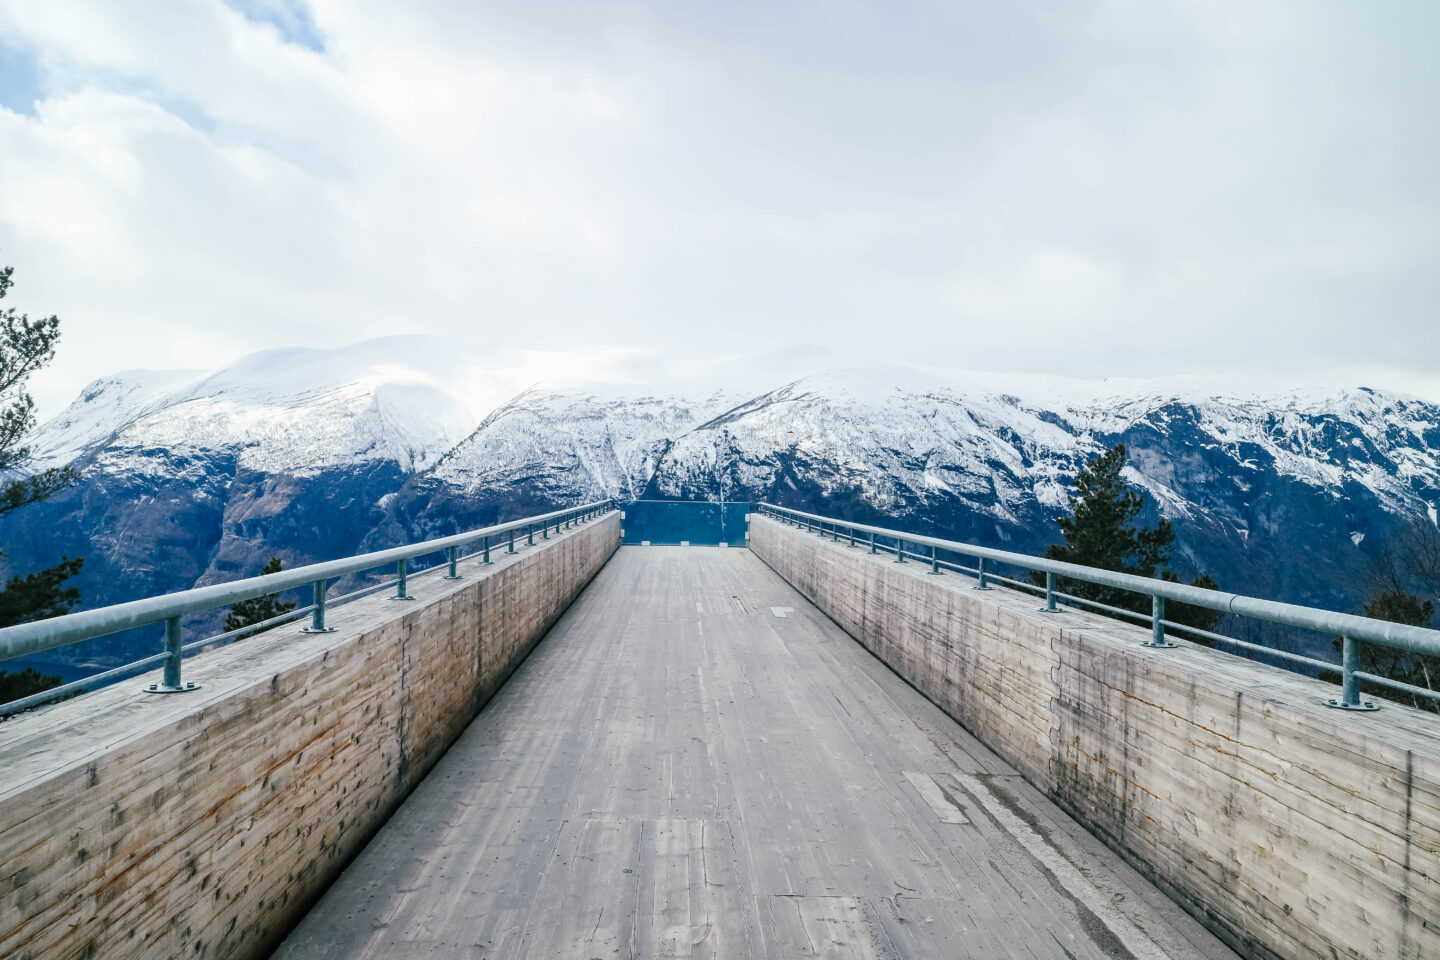 the best time to visit norway, stegastein viewing platform snow mountain tops